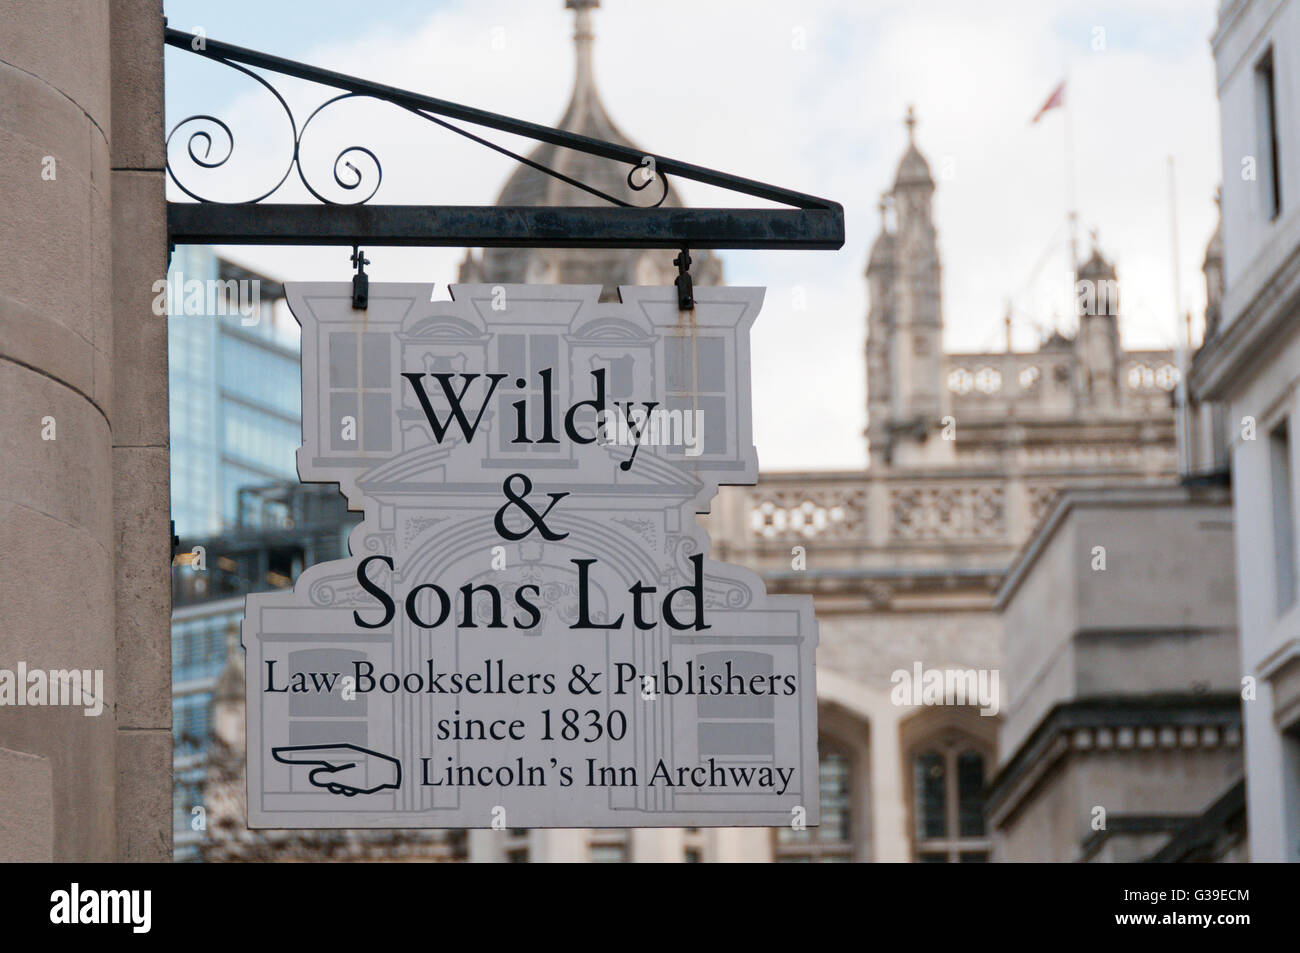 A sign for Wildy & Sons Ltd, law booksellers in London. - Stock Image